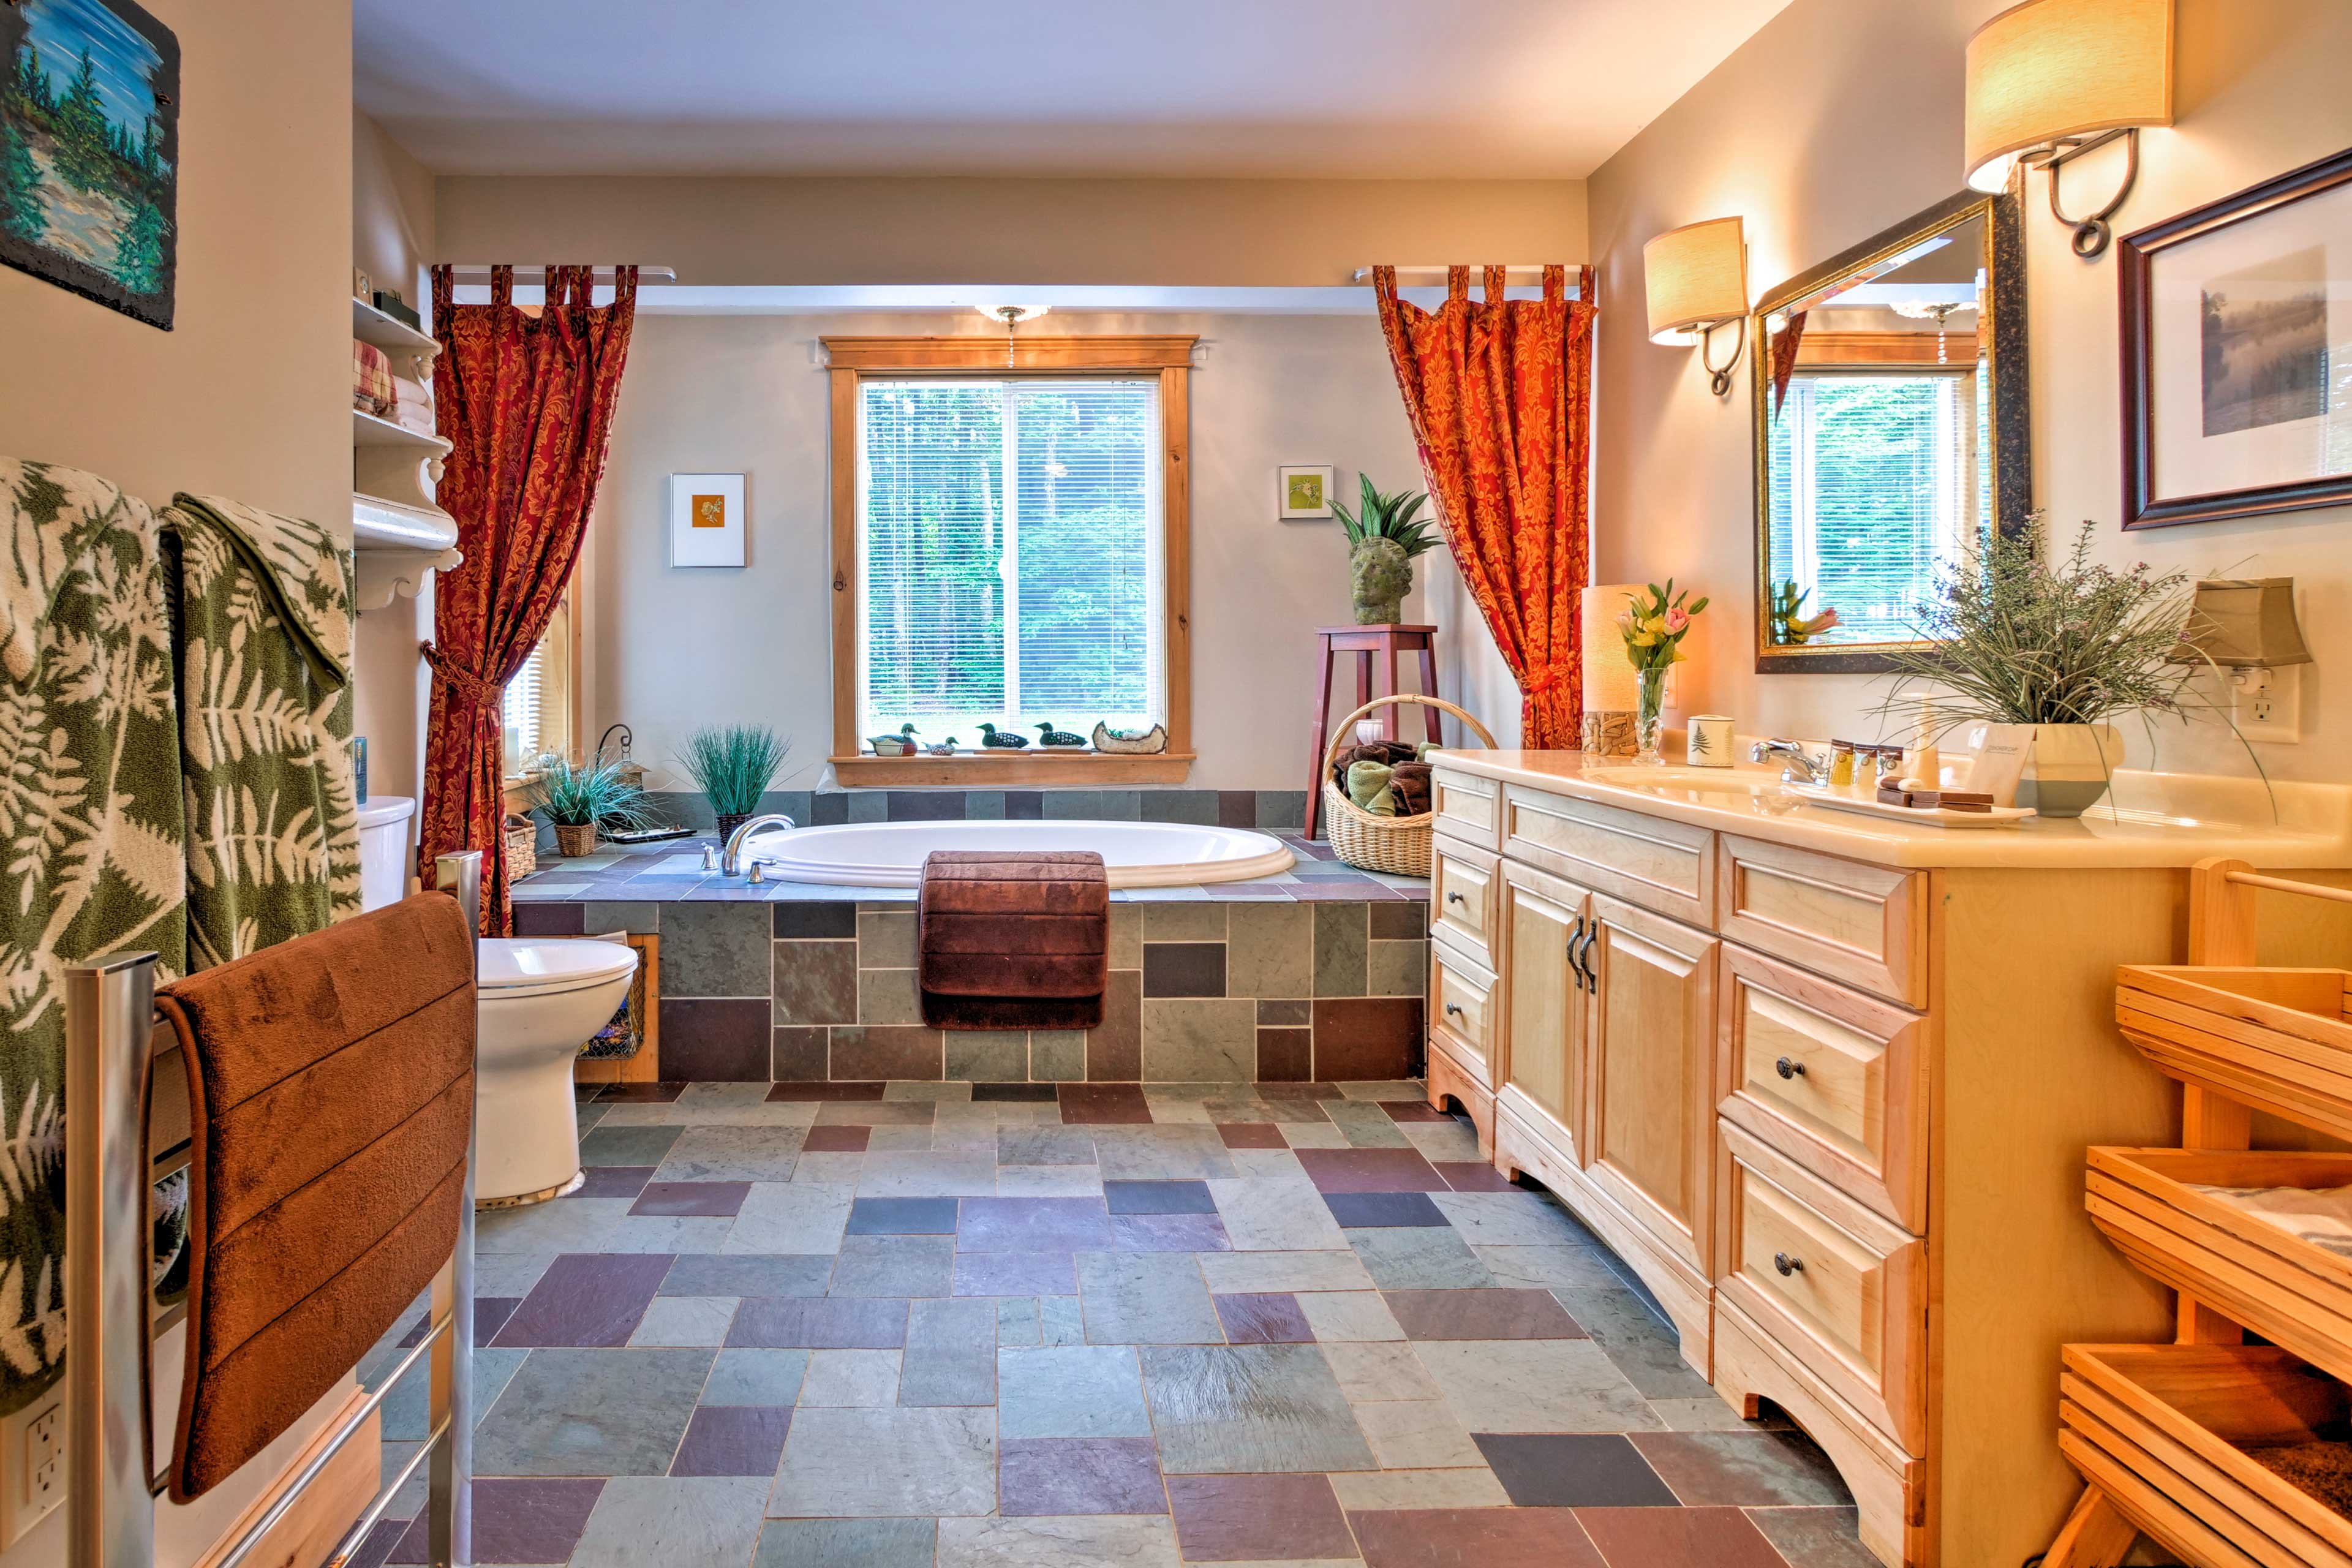 Everyone will enjoy this spa-inspired bathroom with a jetted jacuzzi tub.